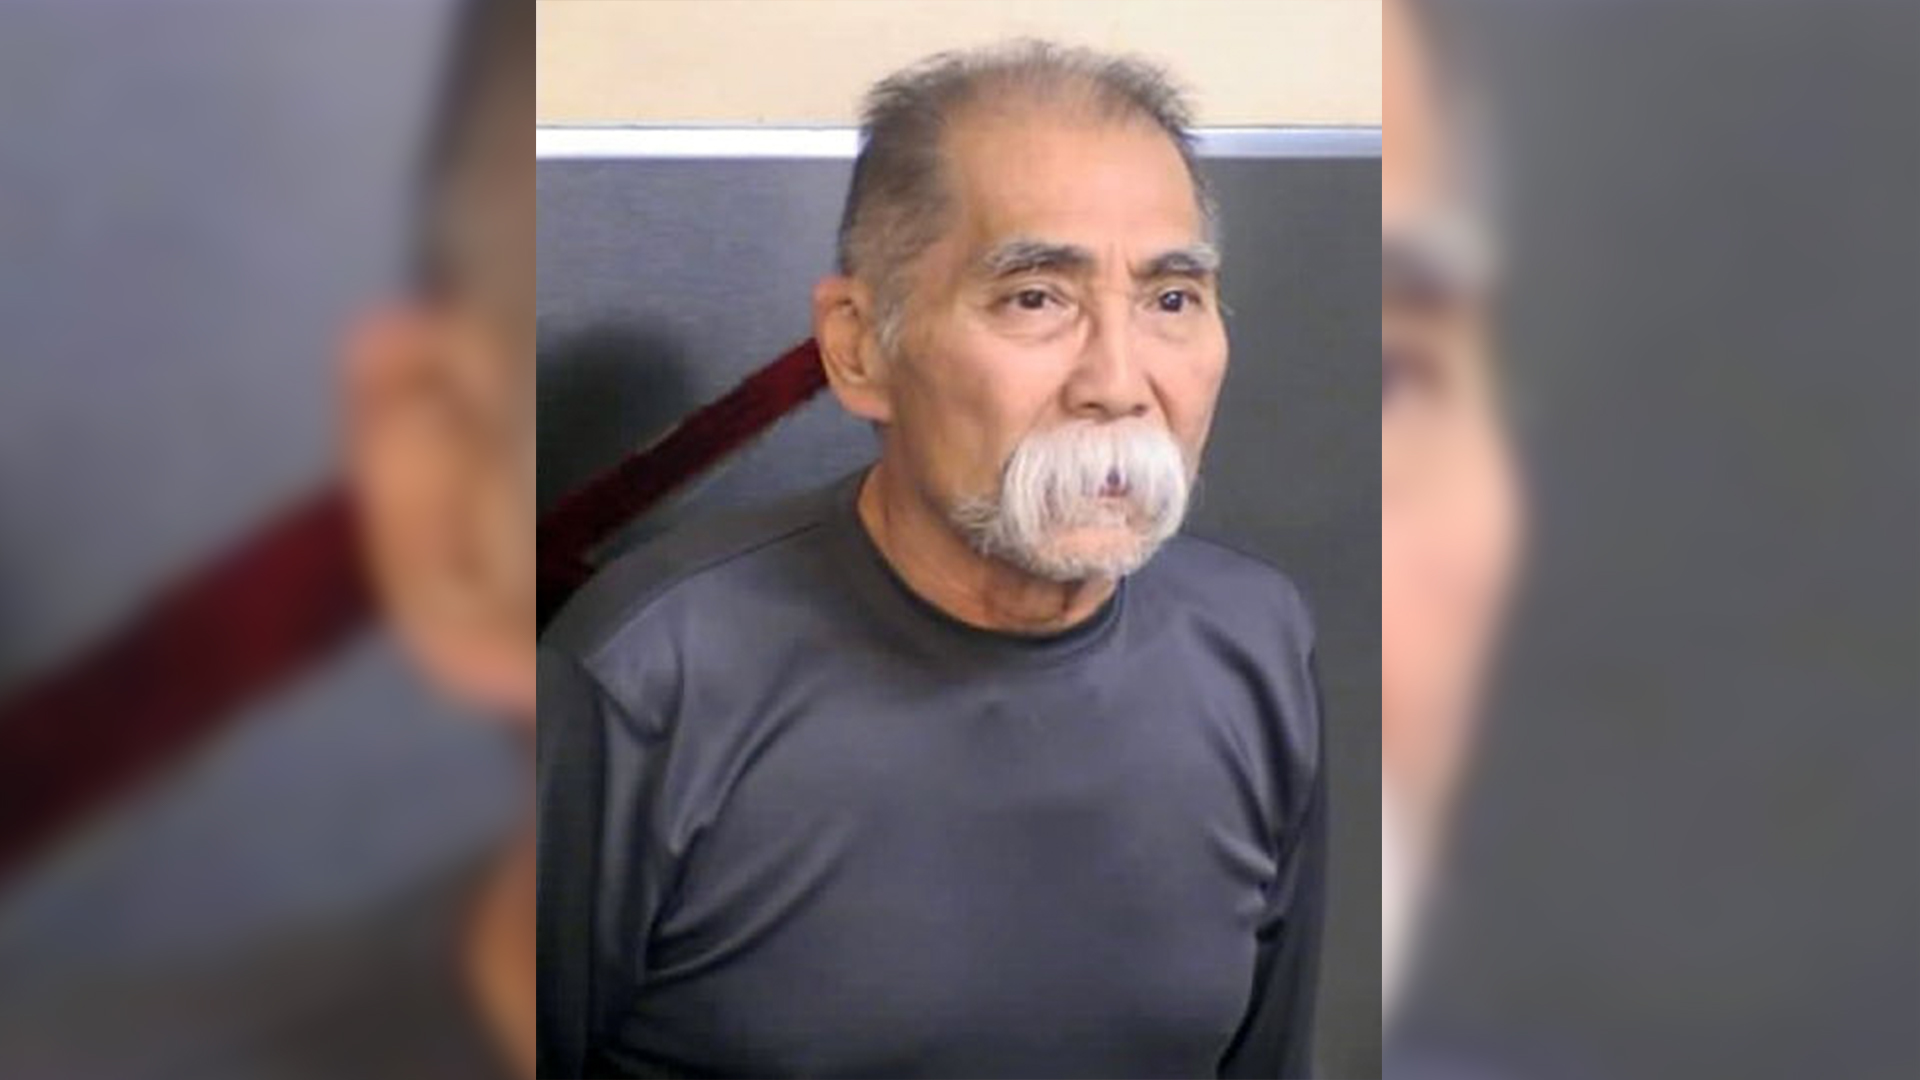 73-year-old arrested with over a kilo of cocaine, other drugs, deputies say